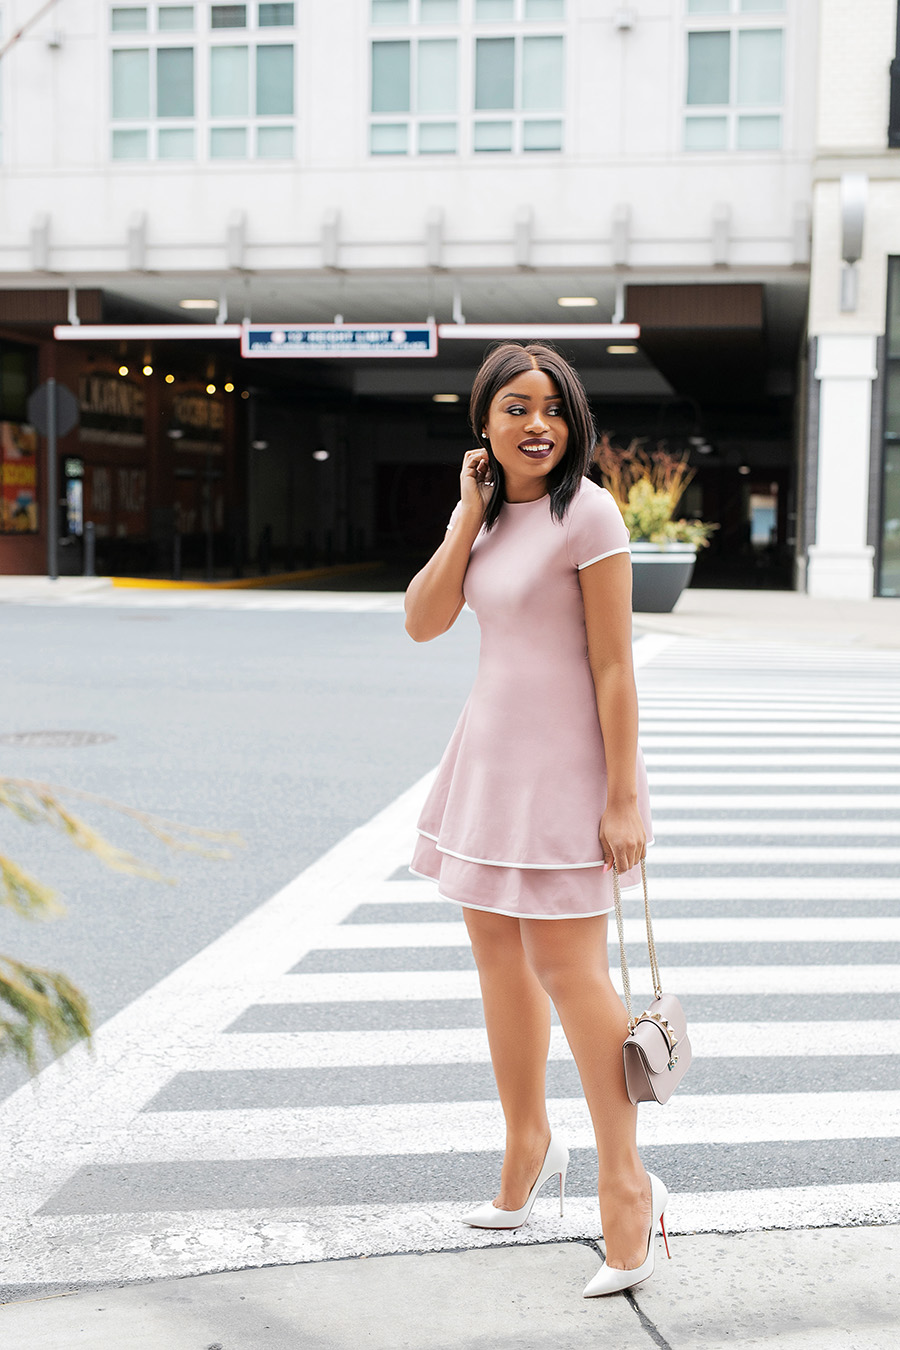 Stella-adewunmi-of-jadore-fashion-shares-pastel-spring-dress-for-easter-weekend